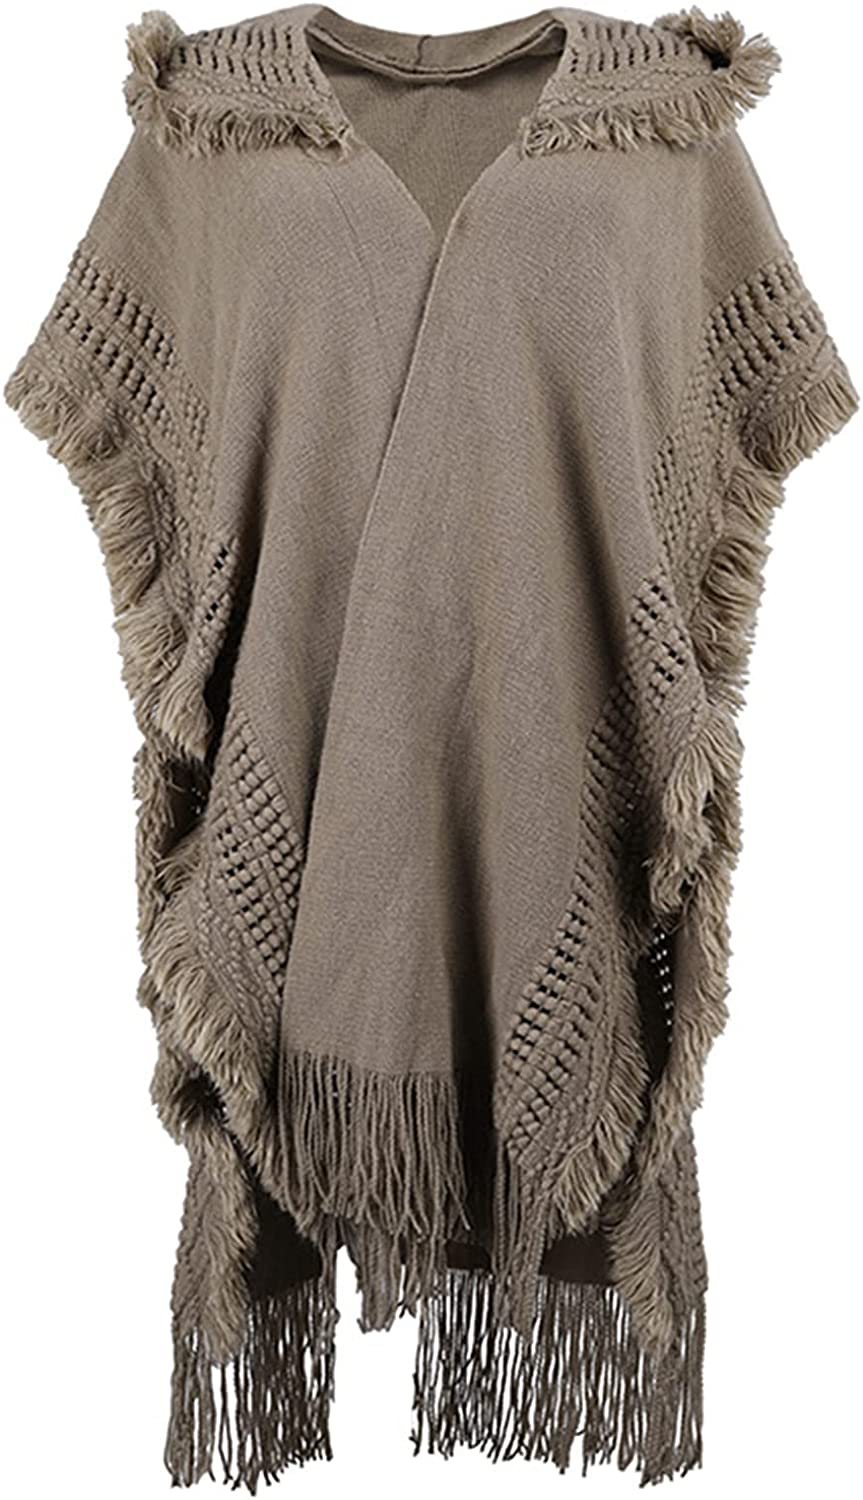 Women's Knitted Tassel Poncho Shawl Open Front Hooded Cape Cardigan Sweater Coat with Fringed Hem